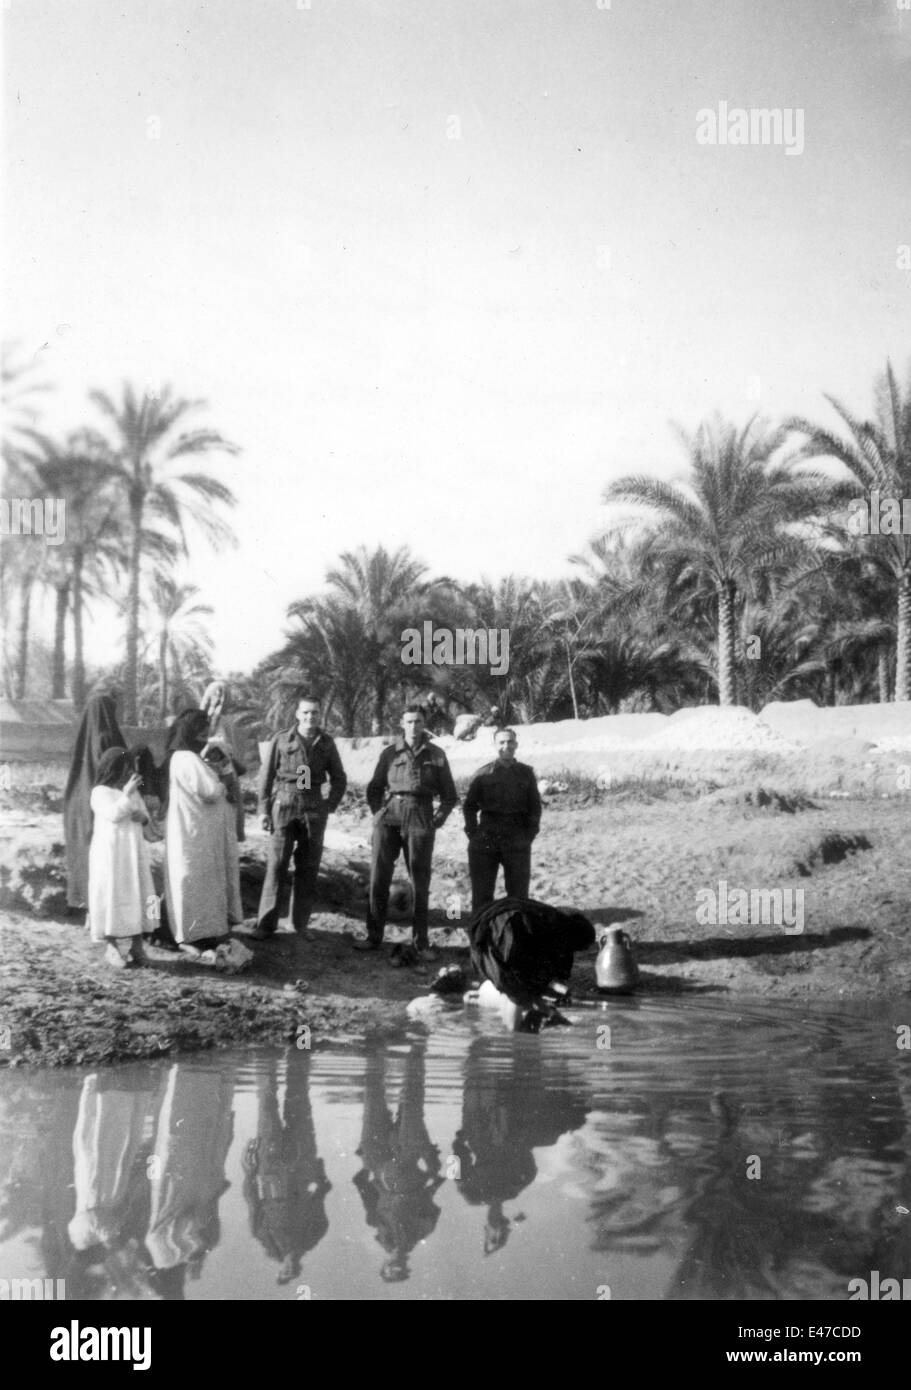 British REME soldiers watch local women washing in the sweet water canal at Tel-el-Kebir Egypt 1943 during World - Stock Image